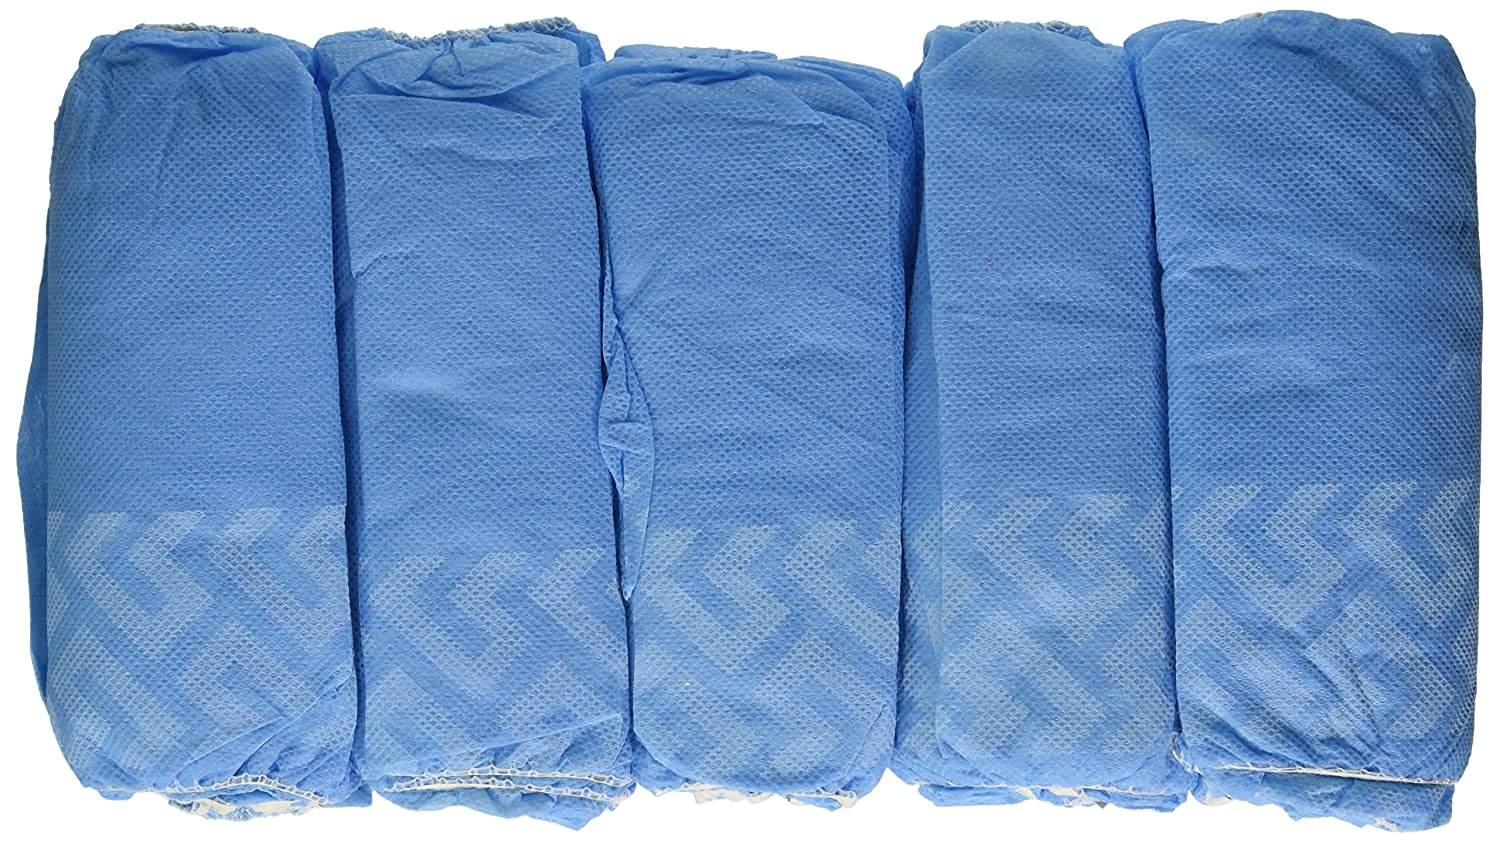 Medical Booties Shoe Covers Non Slip Package of 50 Pair - 100 Covers - Blue